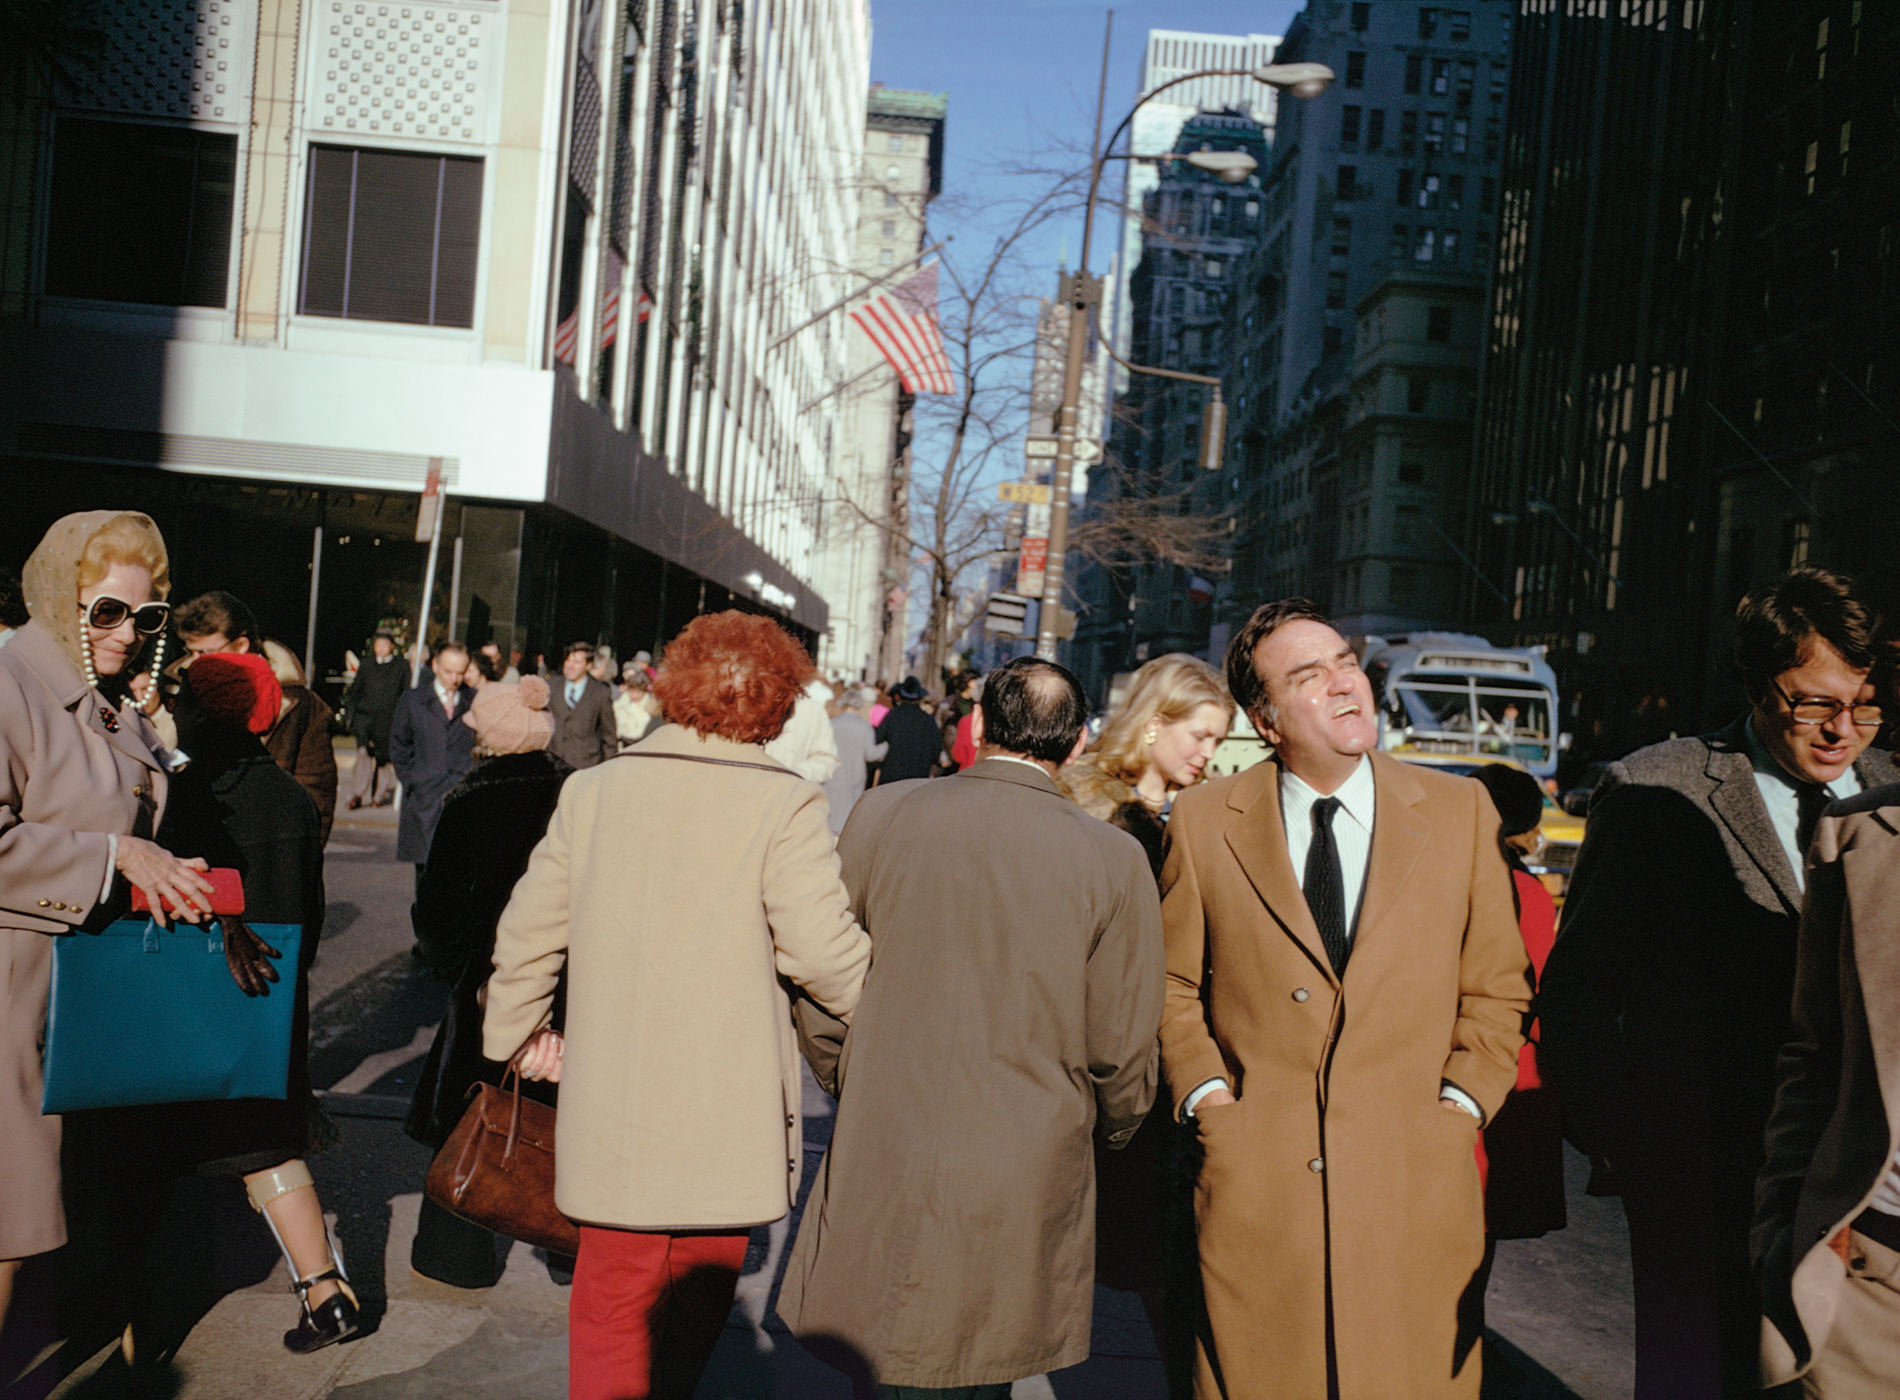 Joel Meyerowitz, New York City, 1974